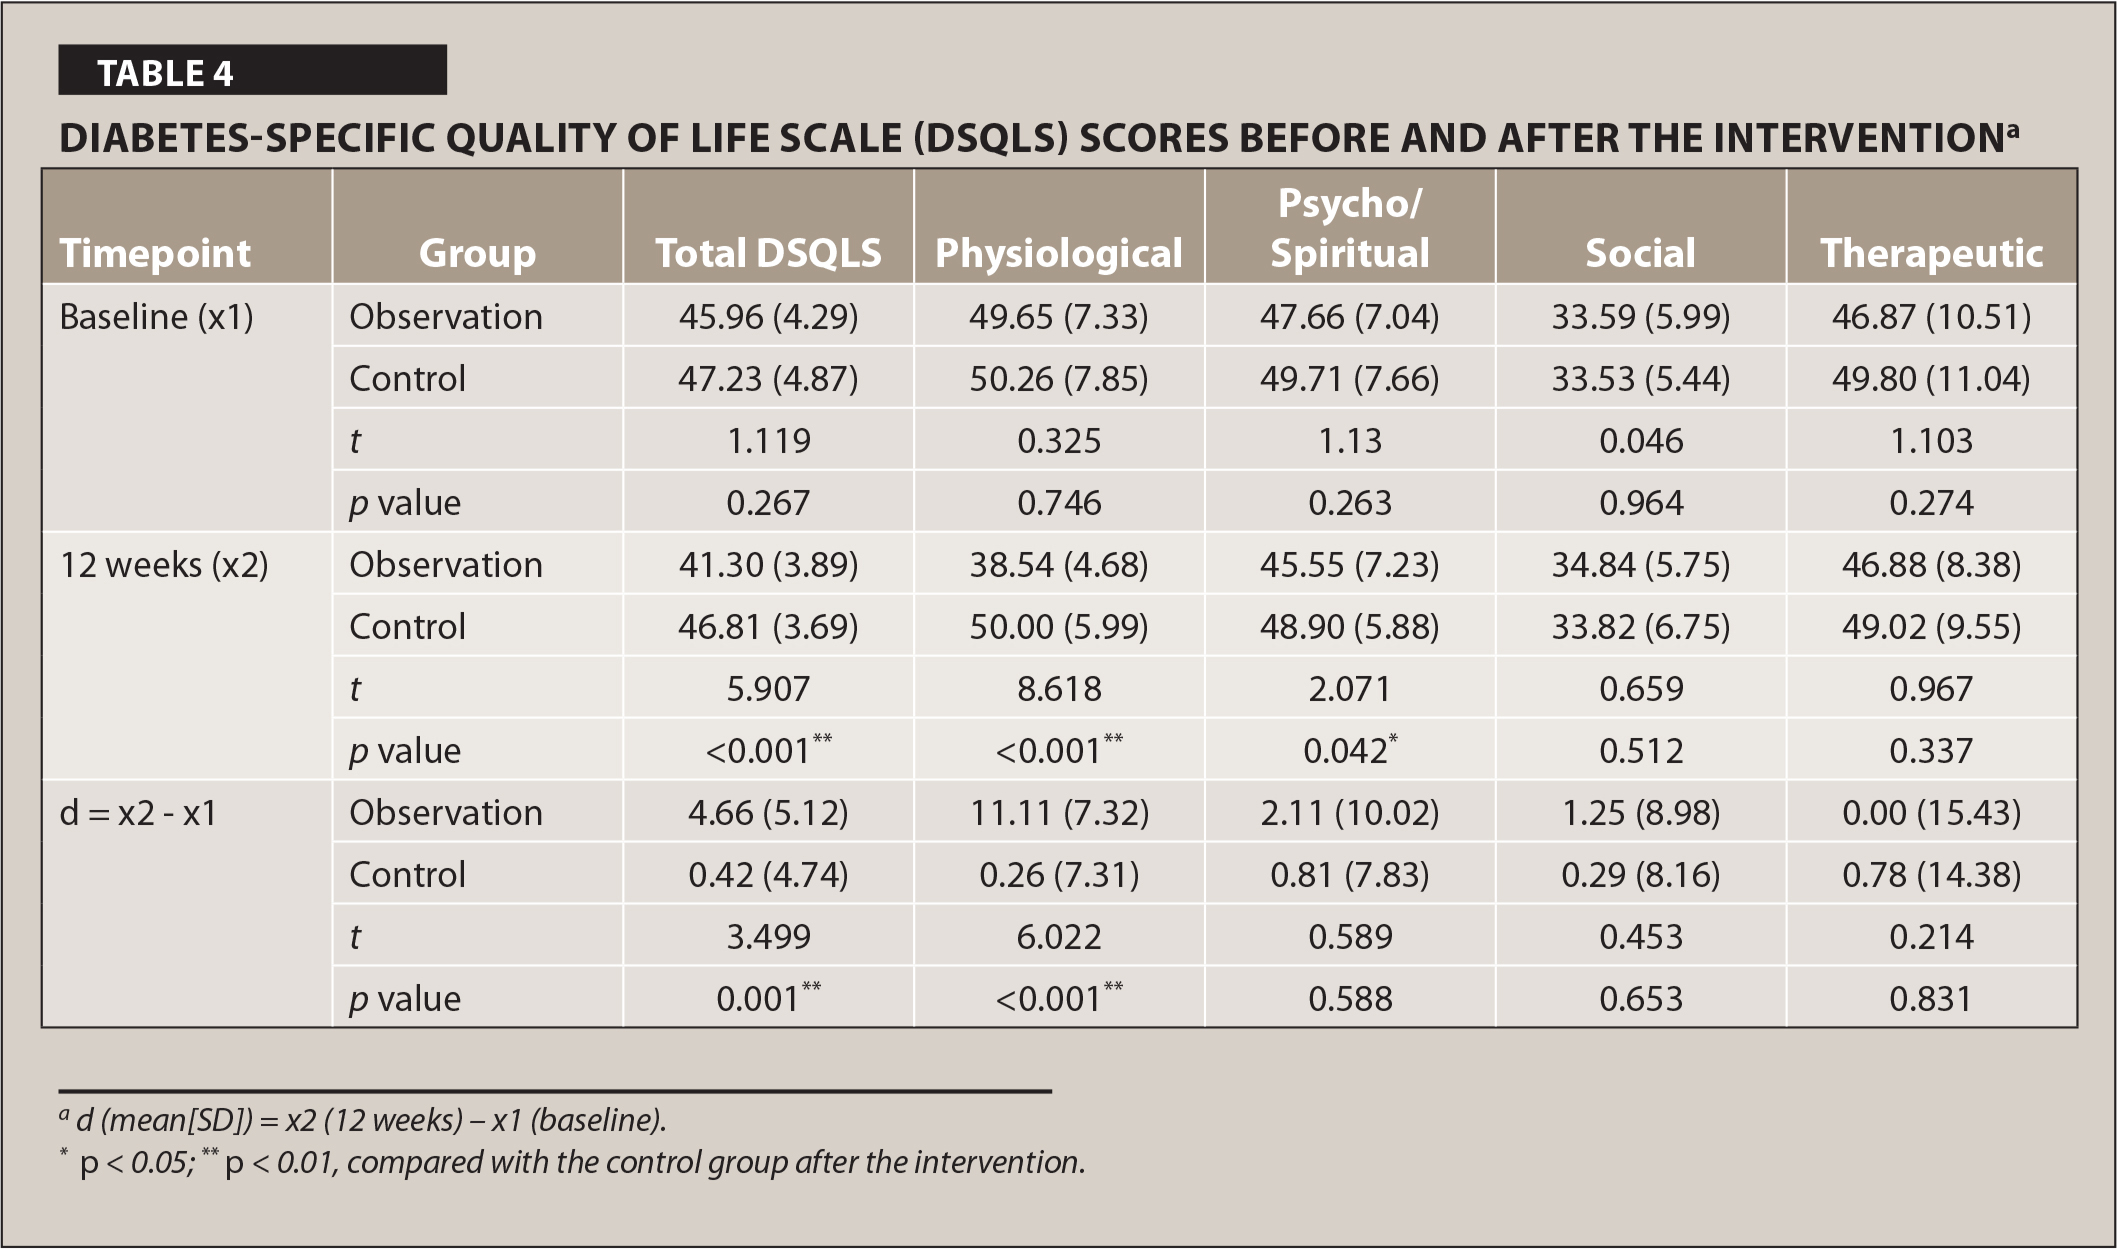 Diabetes-Specific Quality of Life Scale (DSQLS) Scores Before and After the Interventiona